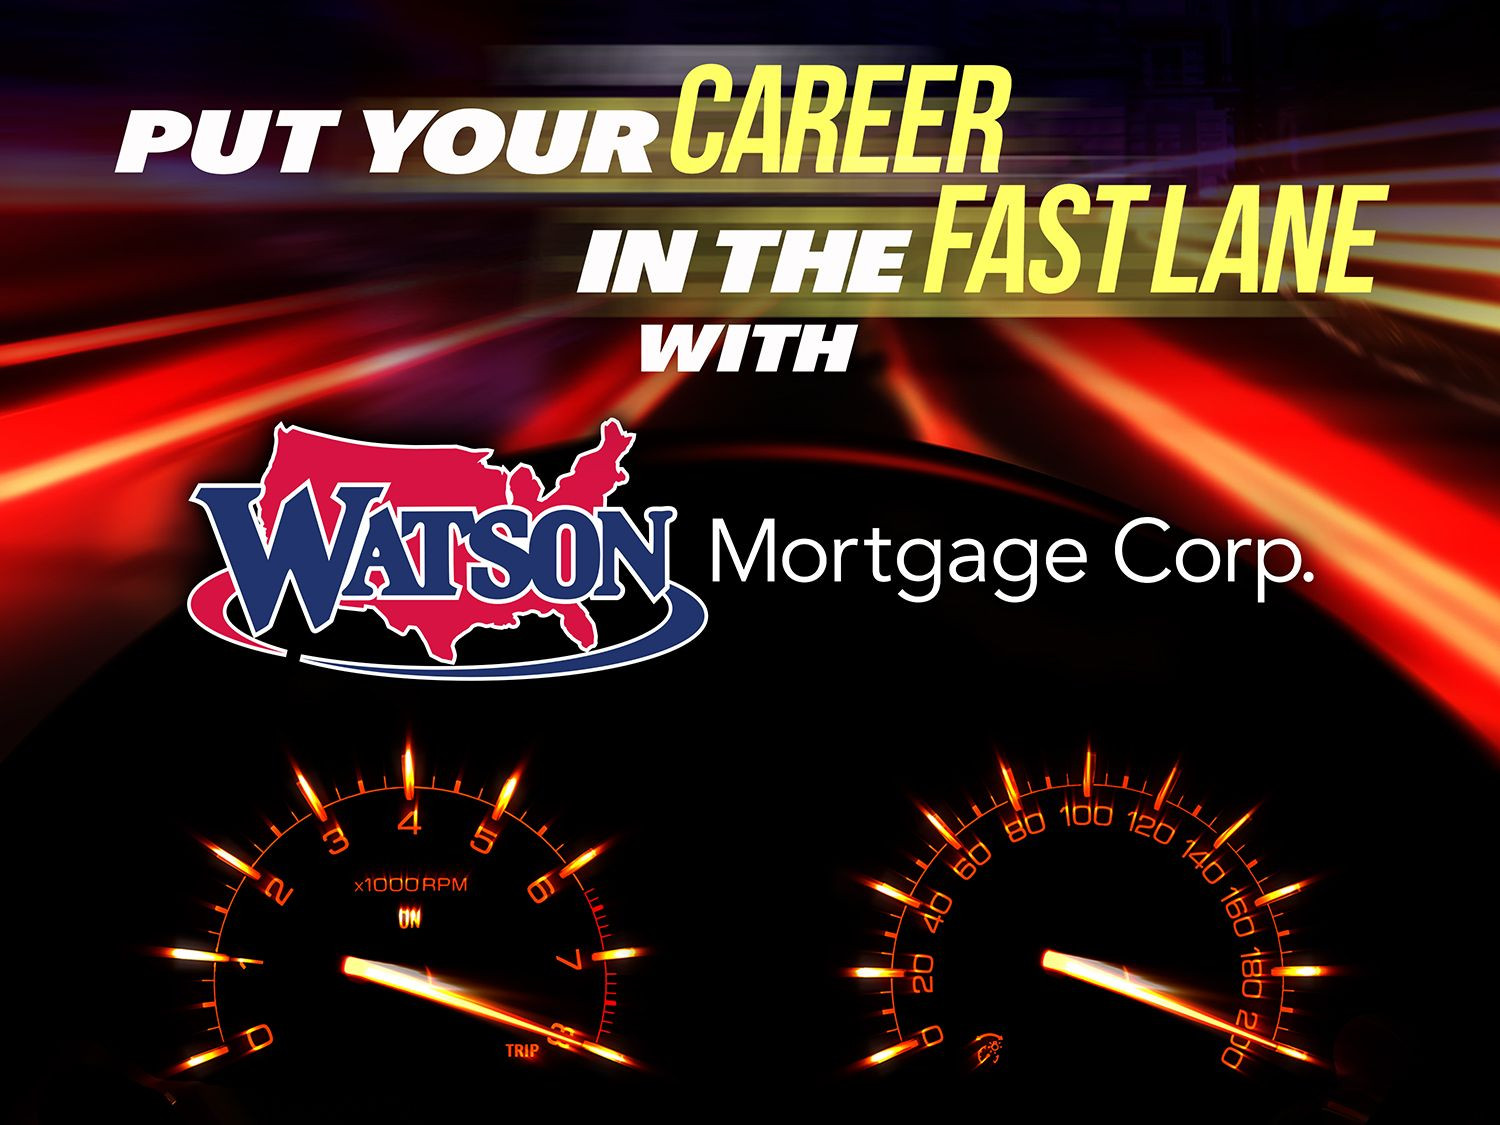 Careers at Watson Mortgage